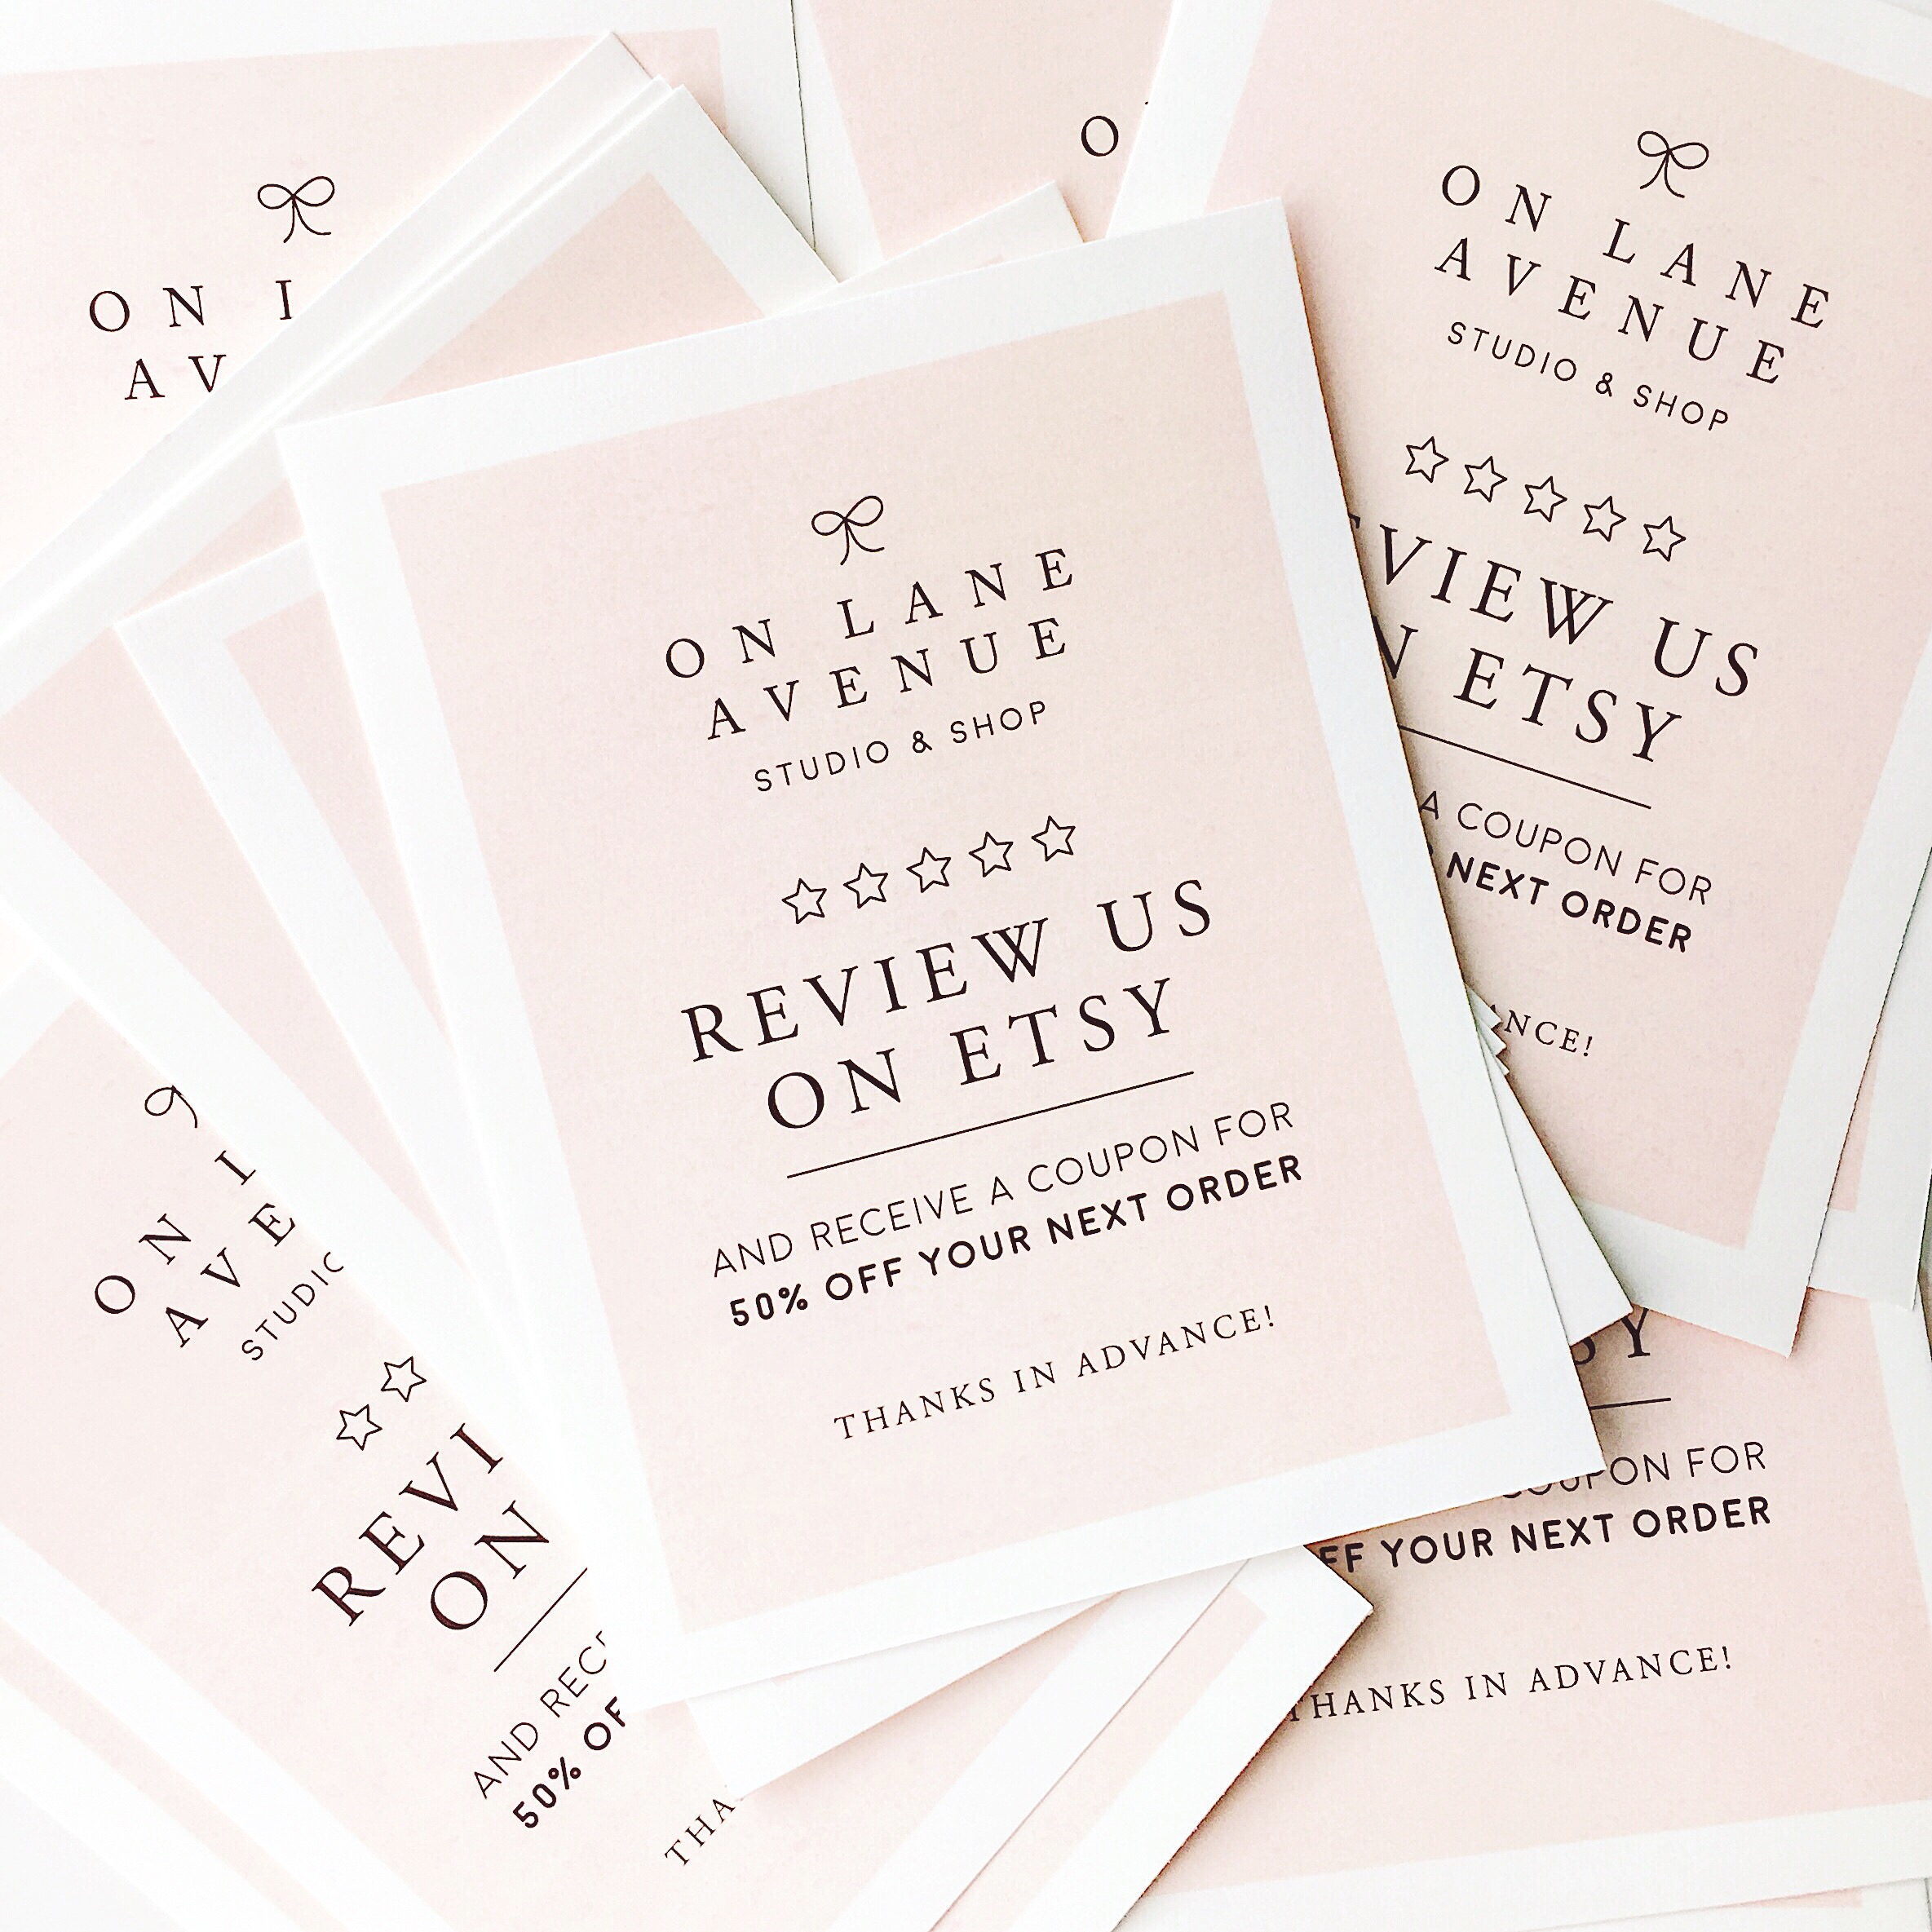 On Lane Avenue_Etsy Inserts.JPG